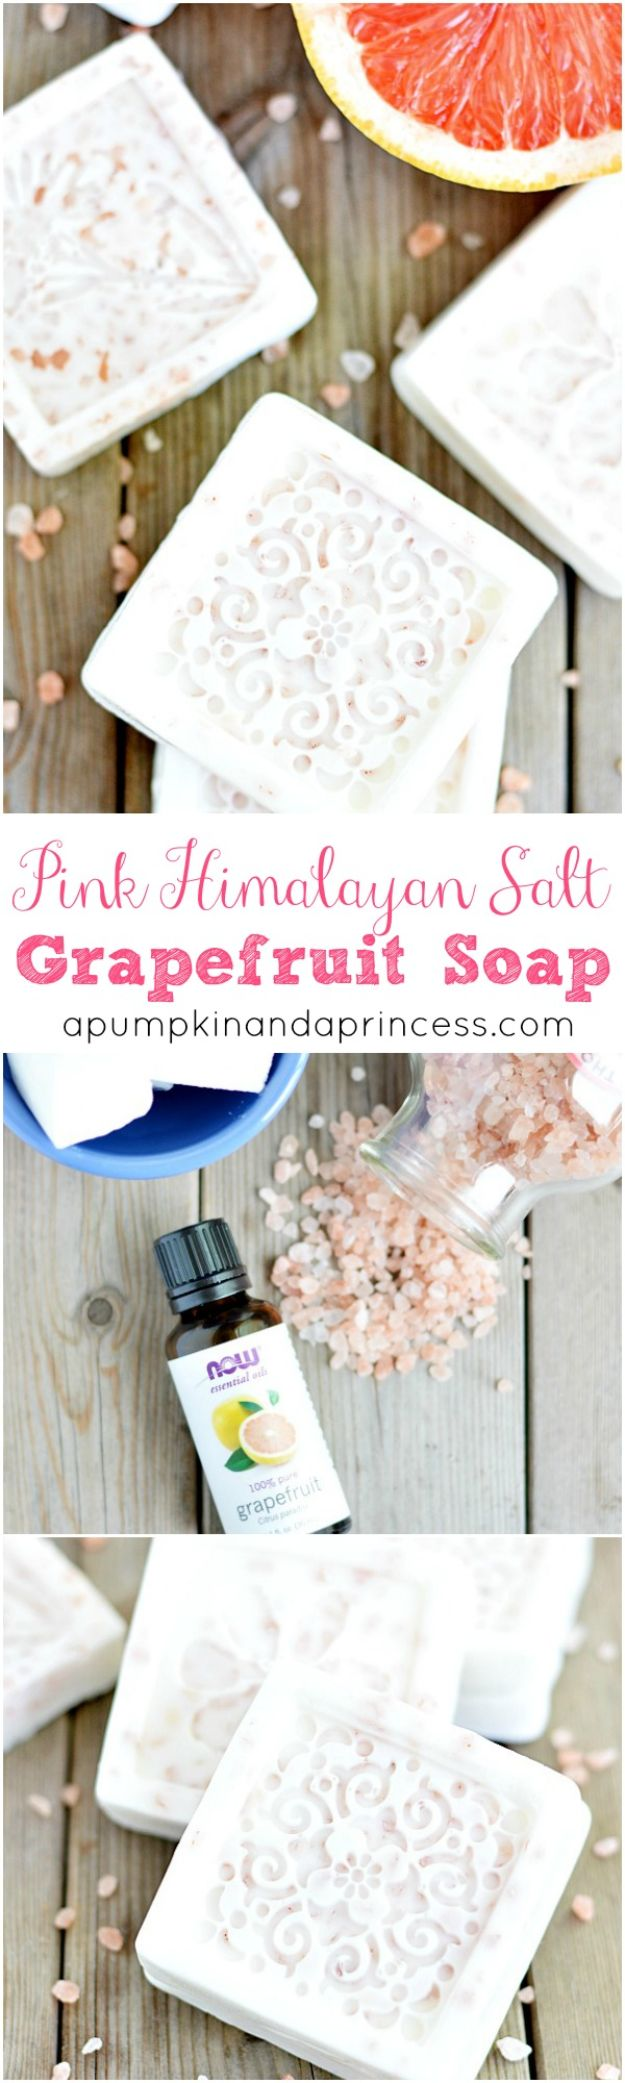 Cool Soaps To Make At Home - Pink Himalayan Salt Grapefruit Soap - DIY Soap Recipes and Ideas - Best Soap Tutorials for Soap Making Without Lye - Easy Cold Process Melt and Pour Tips for Beginners - Crockpot, Essential Oils, Homemade Natural Soaps and Products - Creative Crafts and DIY for Teens, Kids and Adults #soapmaking #diygifts #soap #soaprecipes